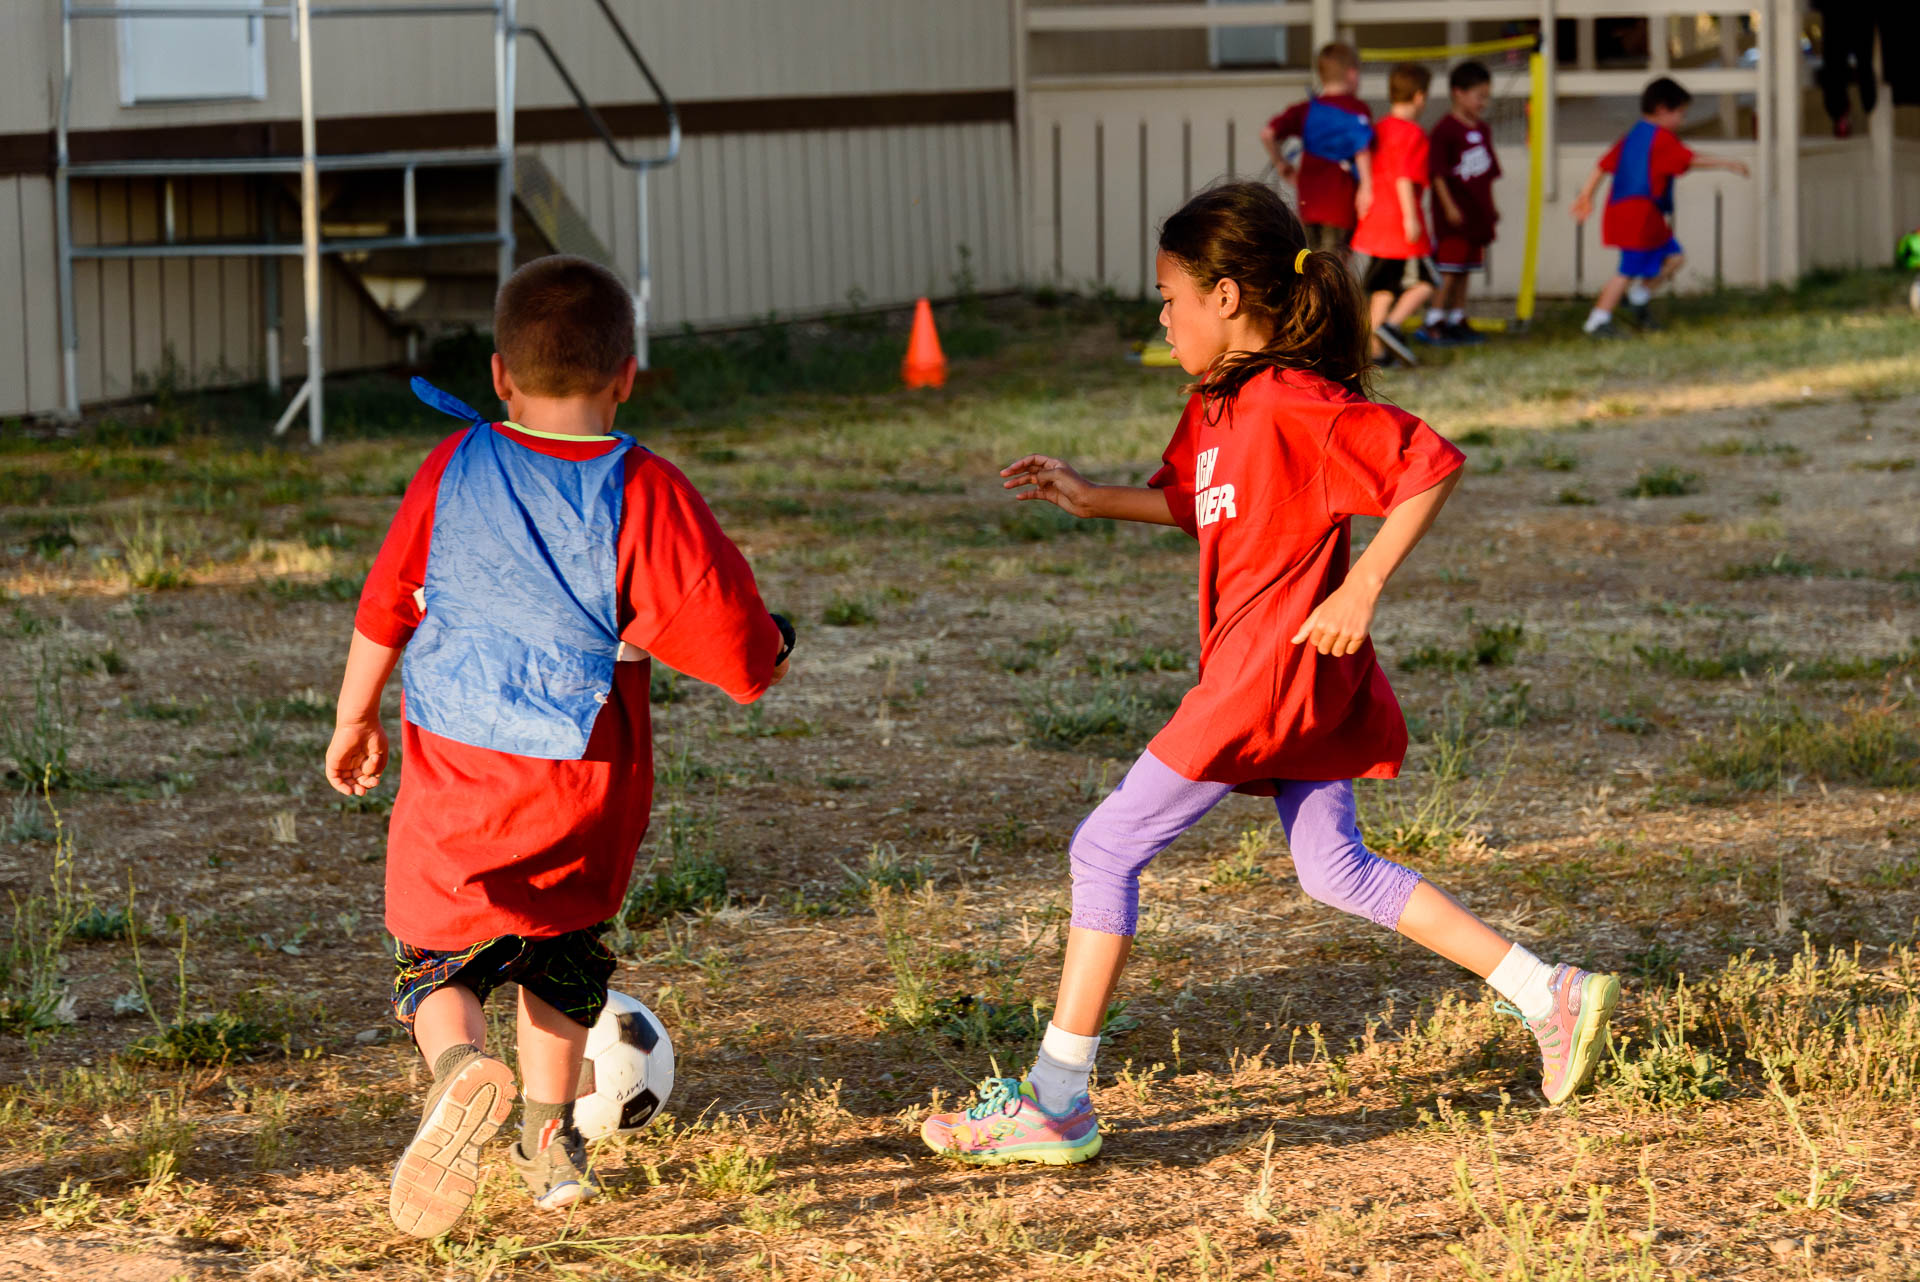 Game time teaches healthy competition and can be used to facilitate a local league at your church.